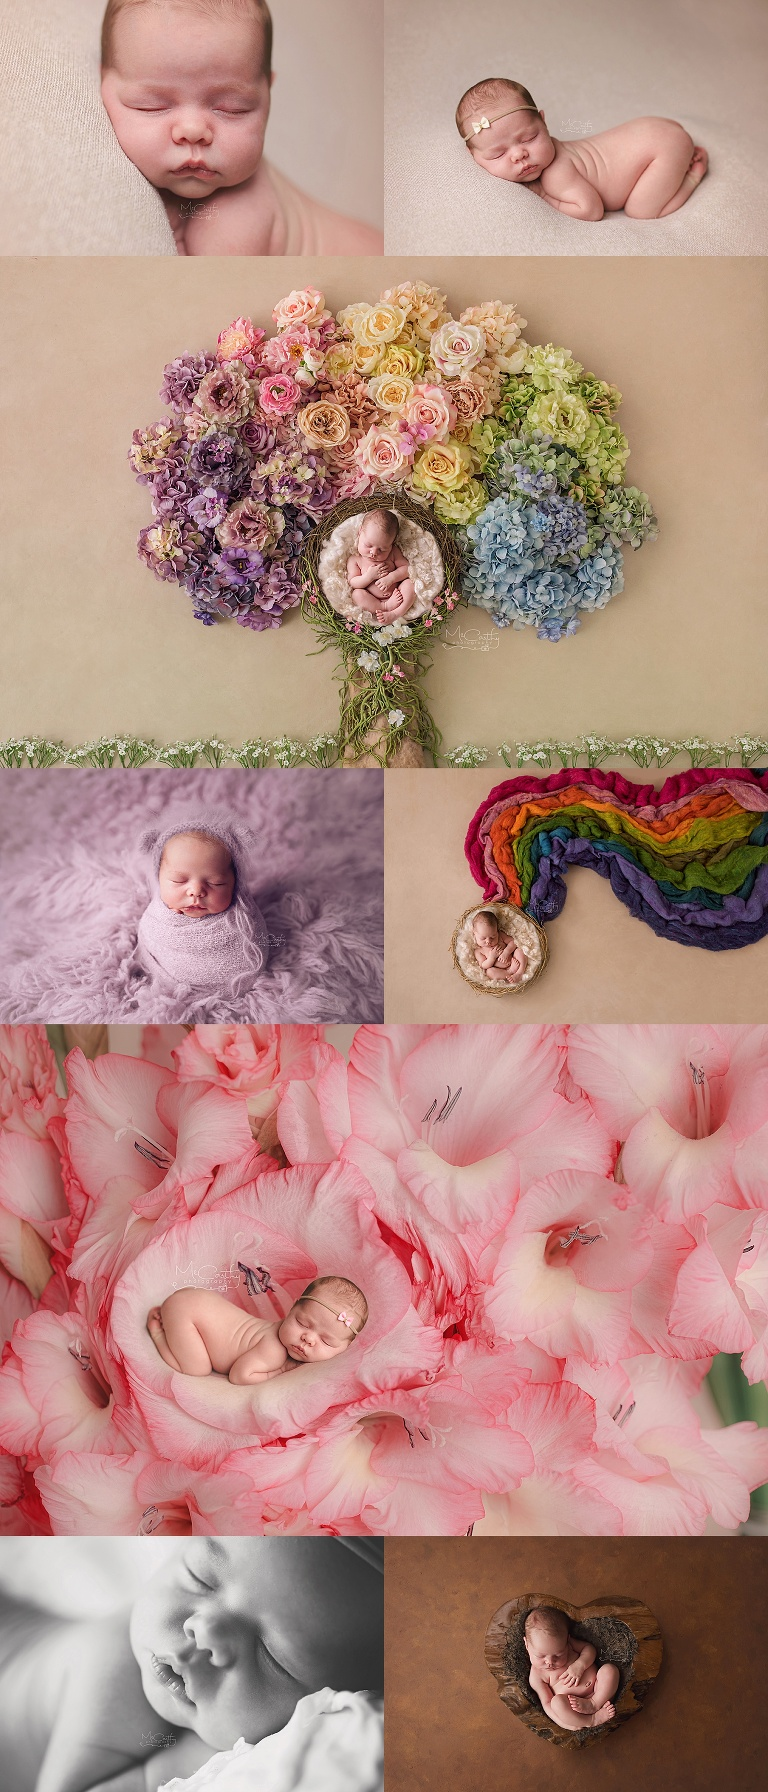 newborn photography sample gallery in strathroy ontario